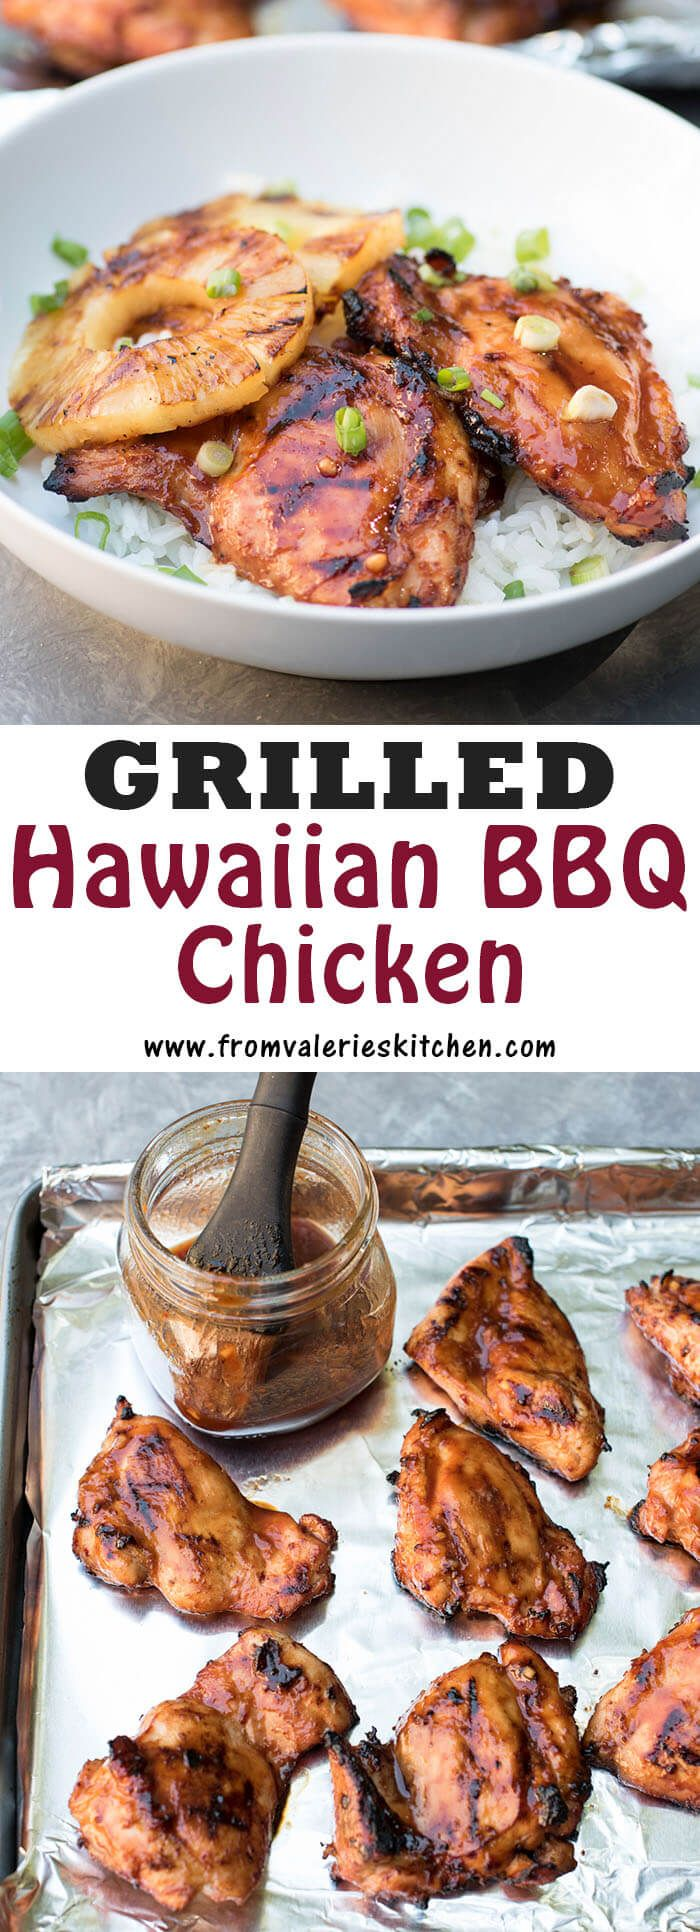 A tropical sesame-soy BBQ marinade sweetened with pineapple juice creates this tender Grilled Hawaiian BBQ Chicken served with grilled pineapple and rice.